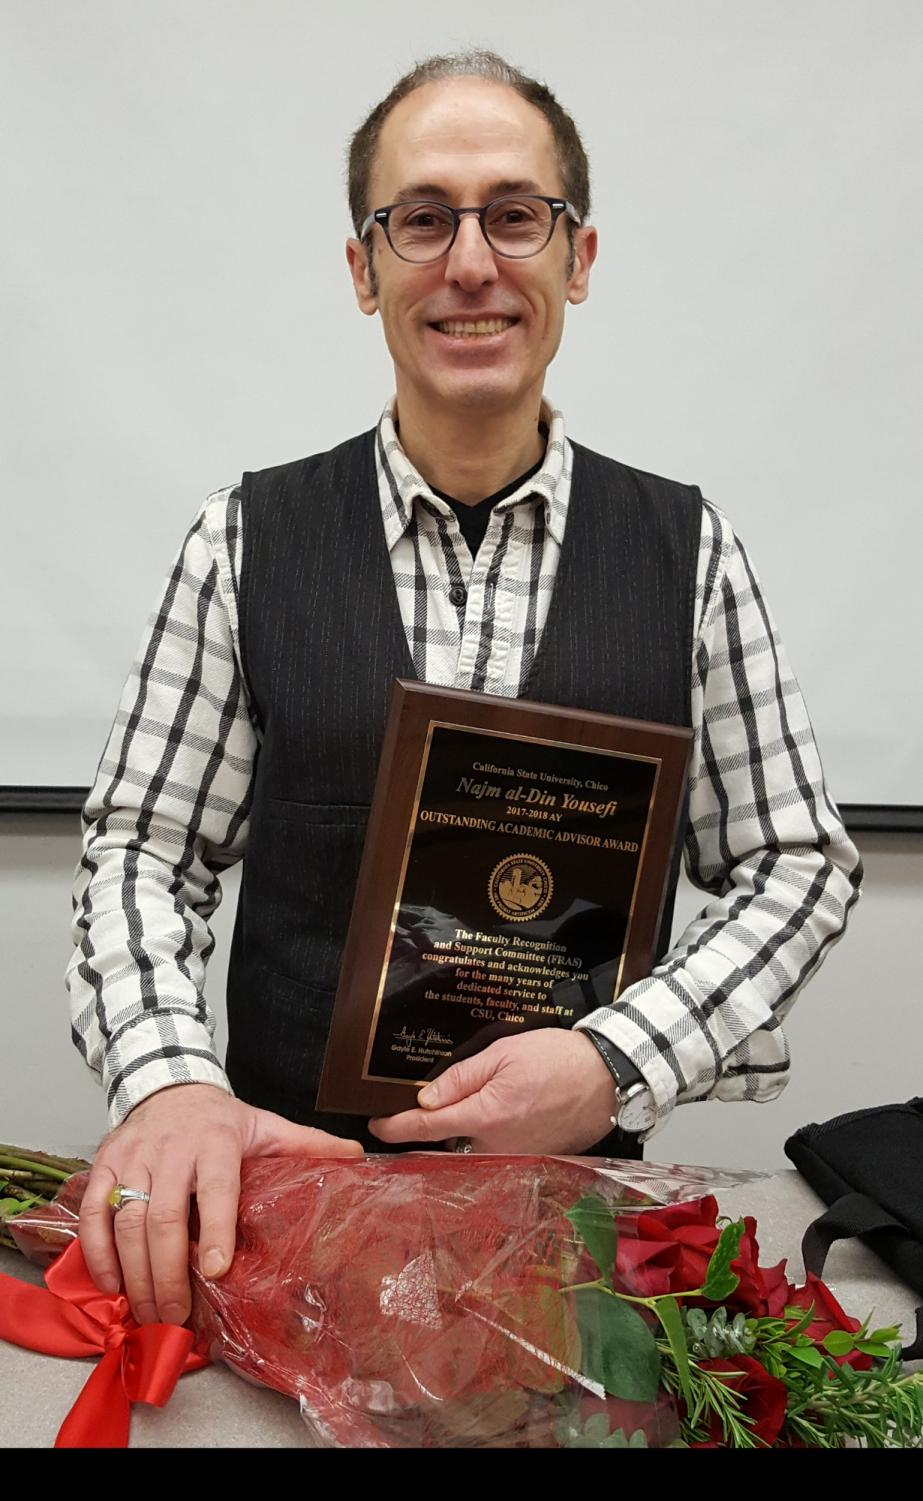 Instructors, alumni receive awards for outstanding teaching